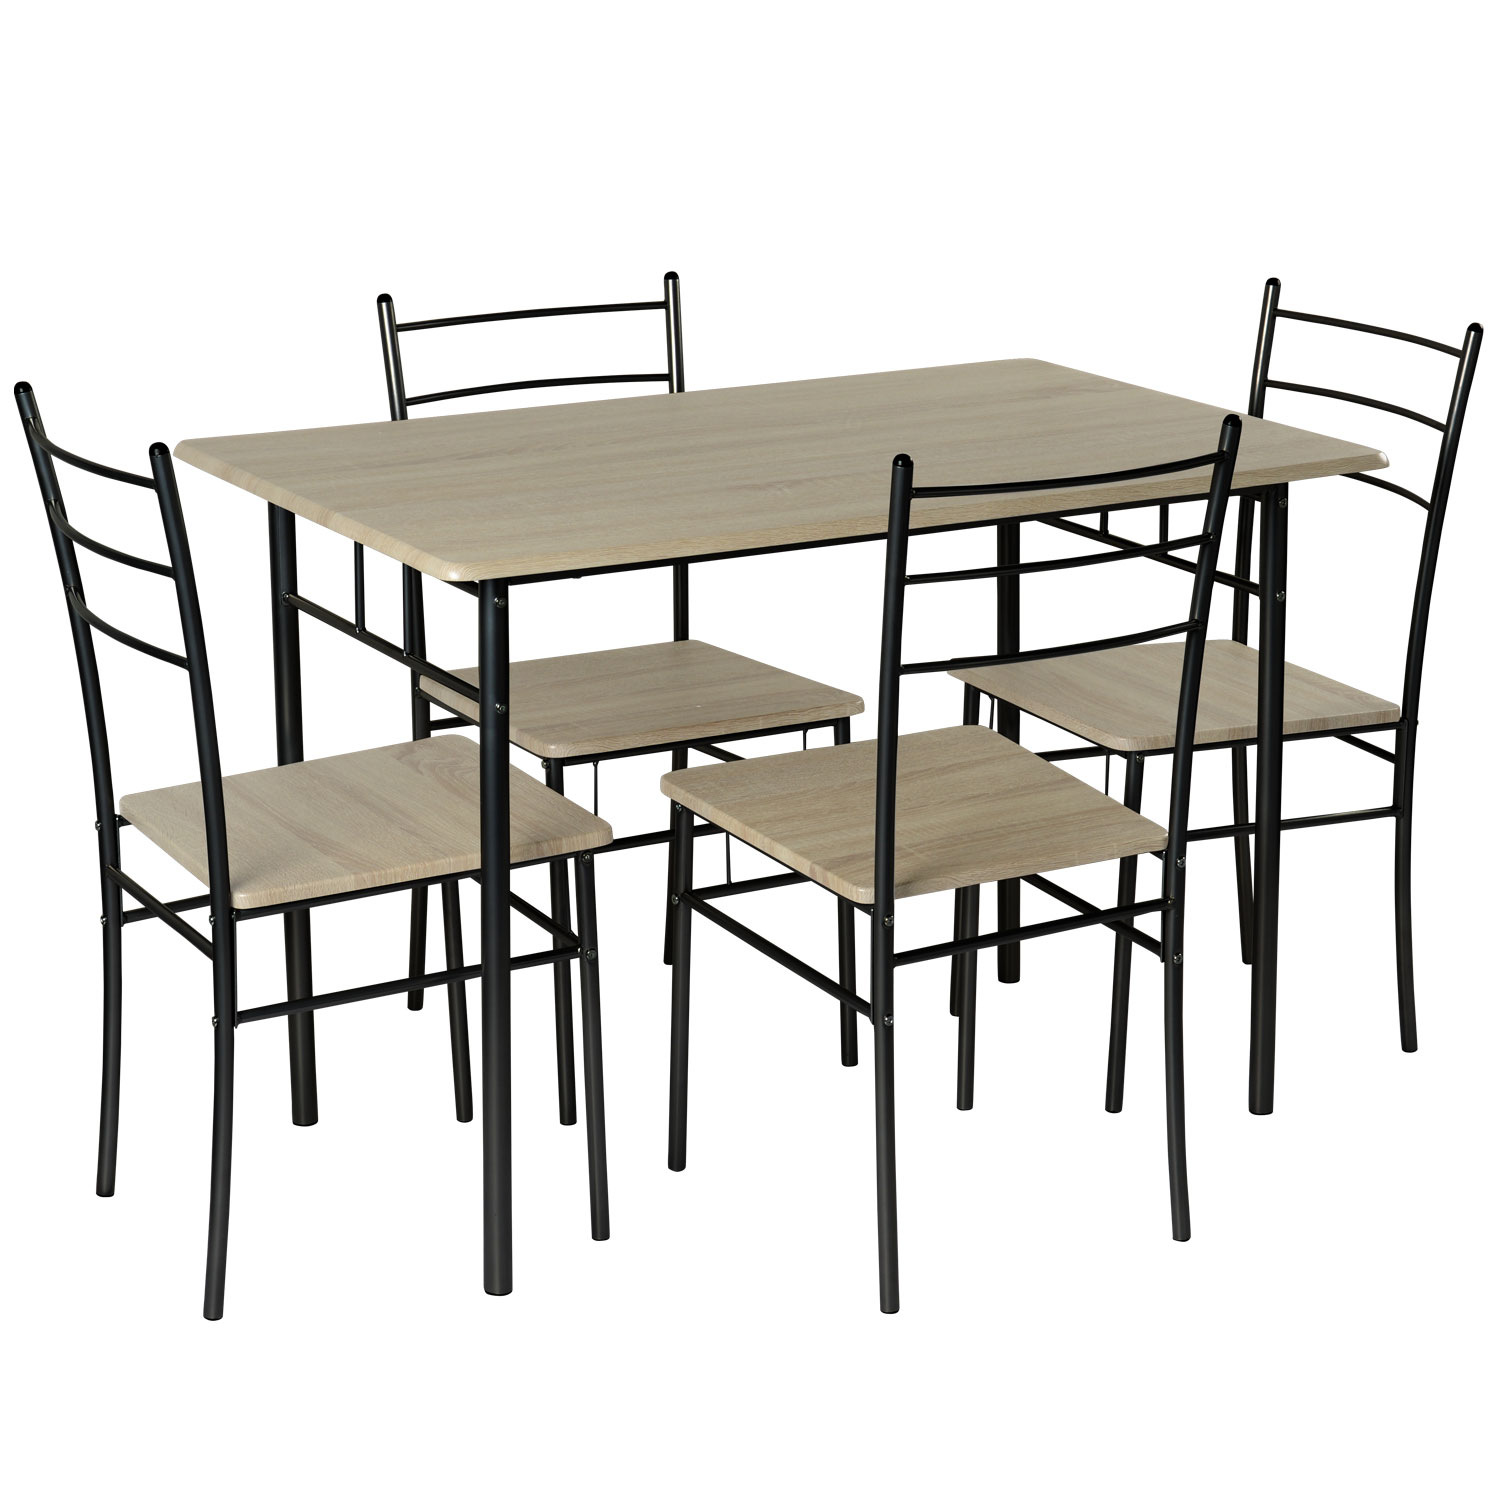 5 Piece Modern Dining Table And 4 Chairs Set Textured Wood